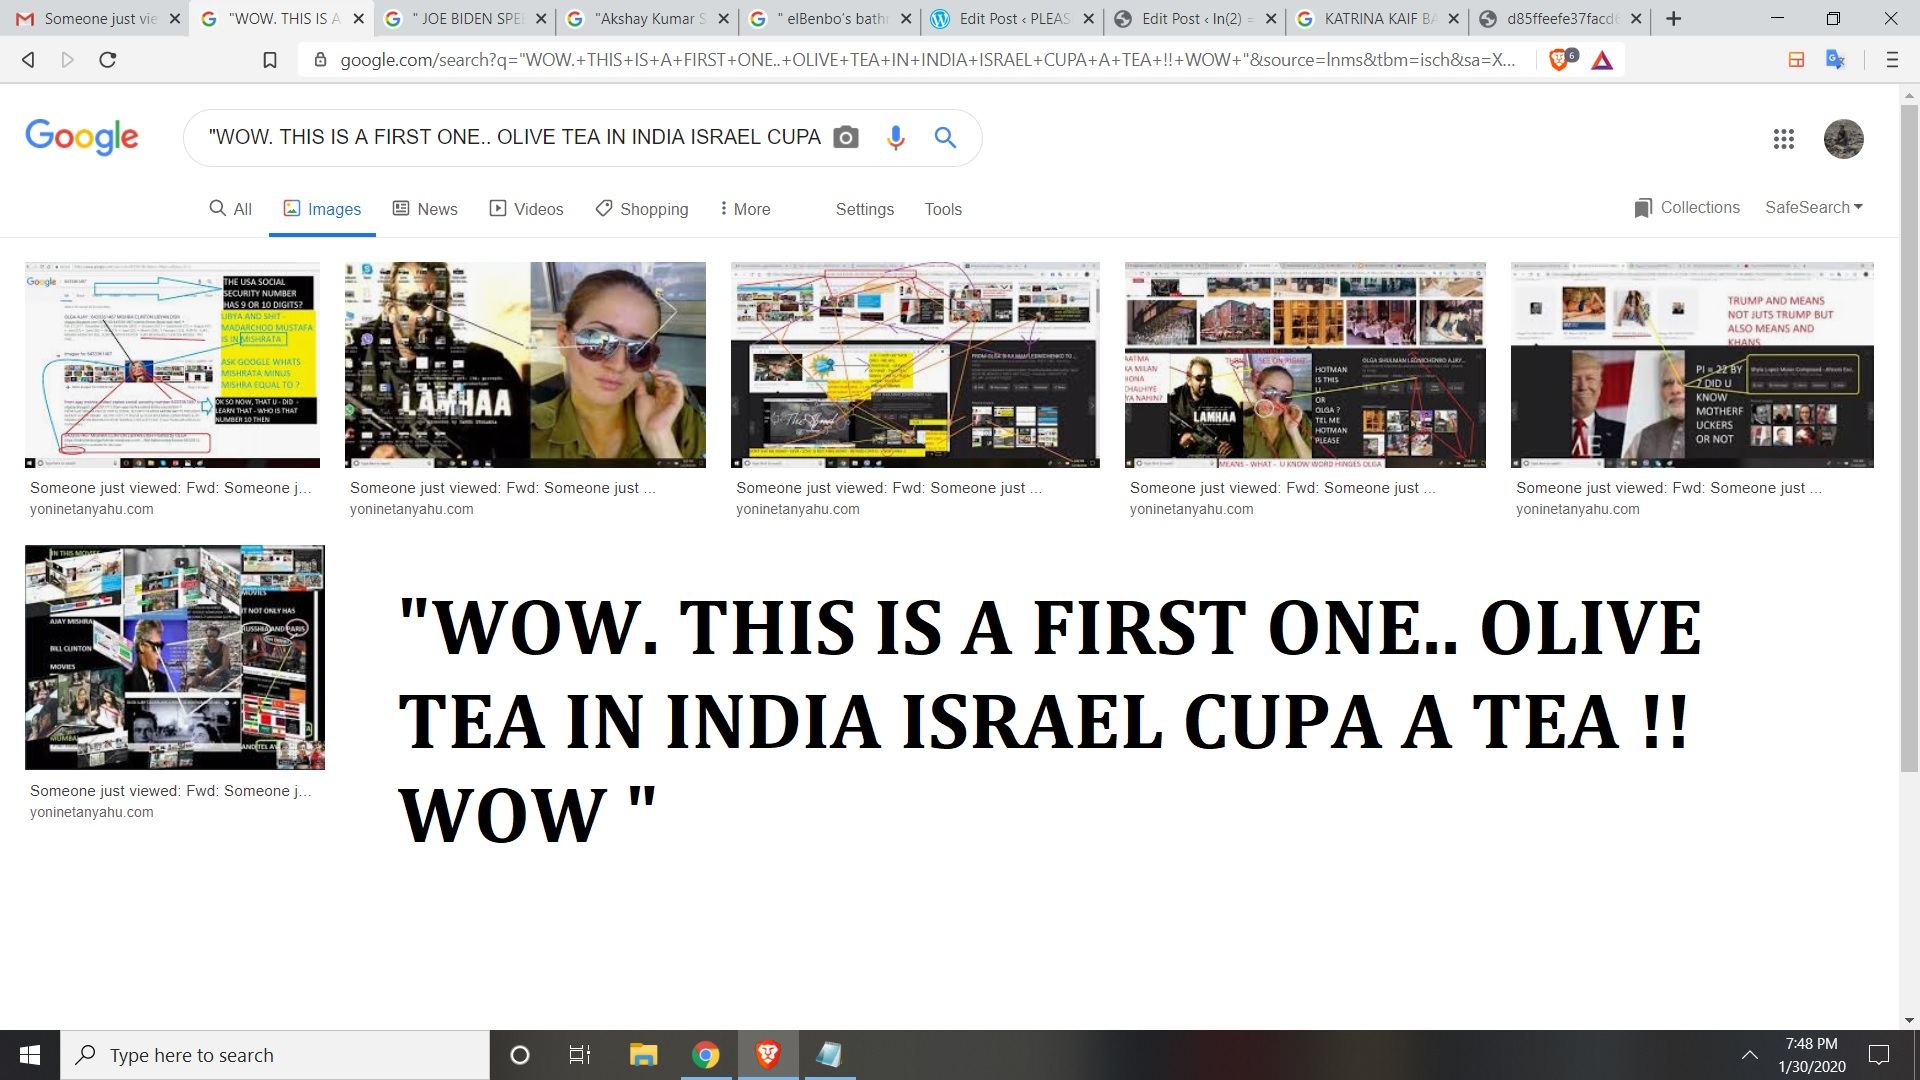 WOW. THIS IS A FIRST ONE.. OLIVE TEA IN INDIA ISRAEL CUPA A TEA WOW